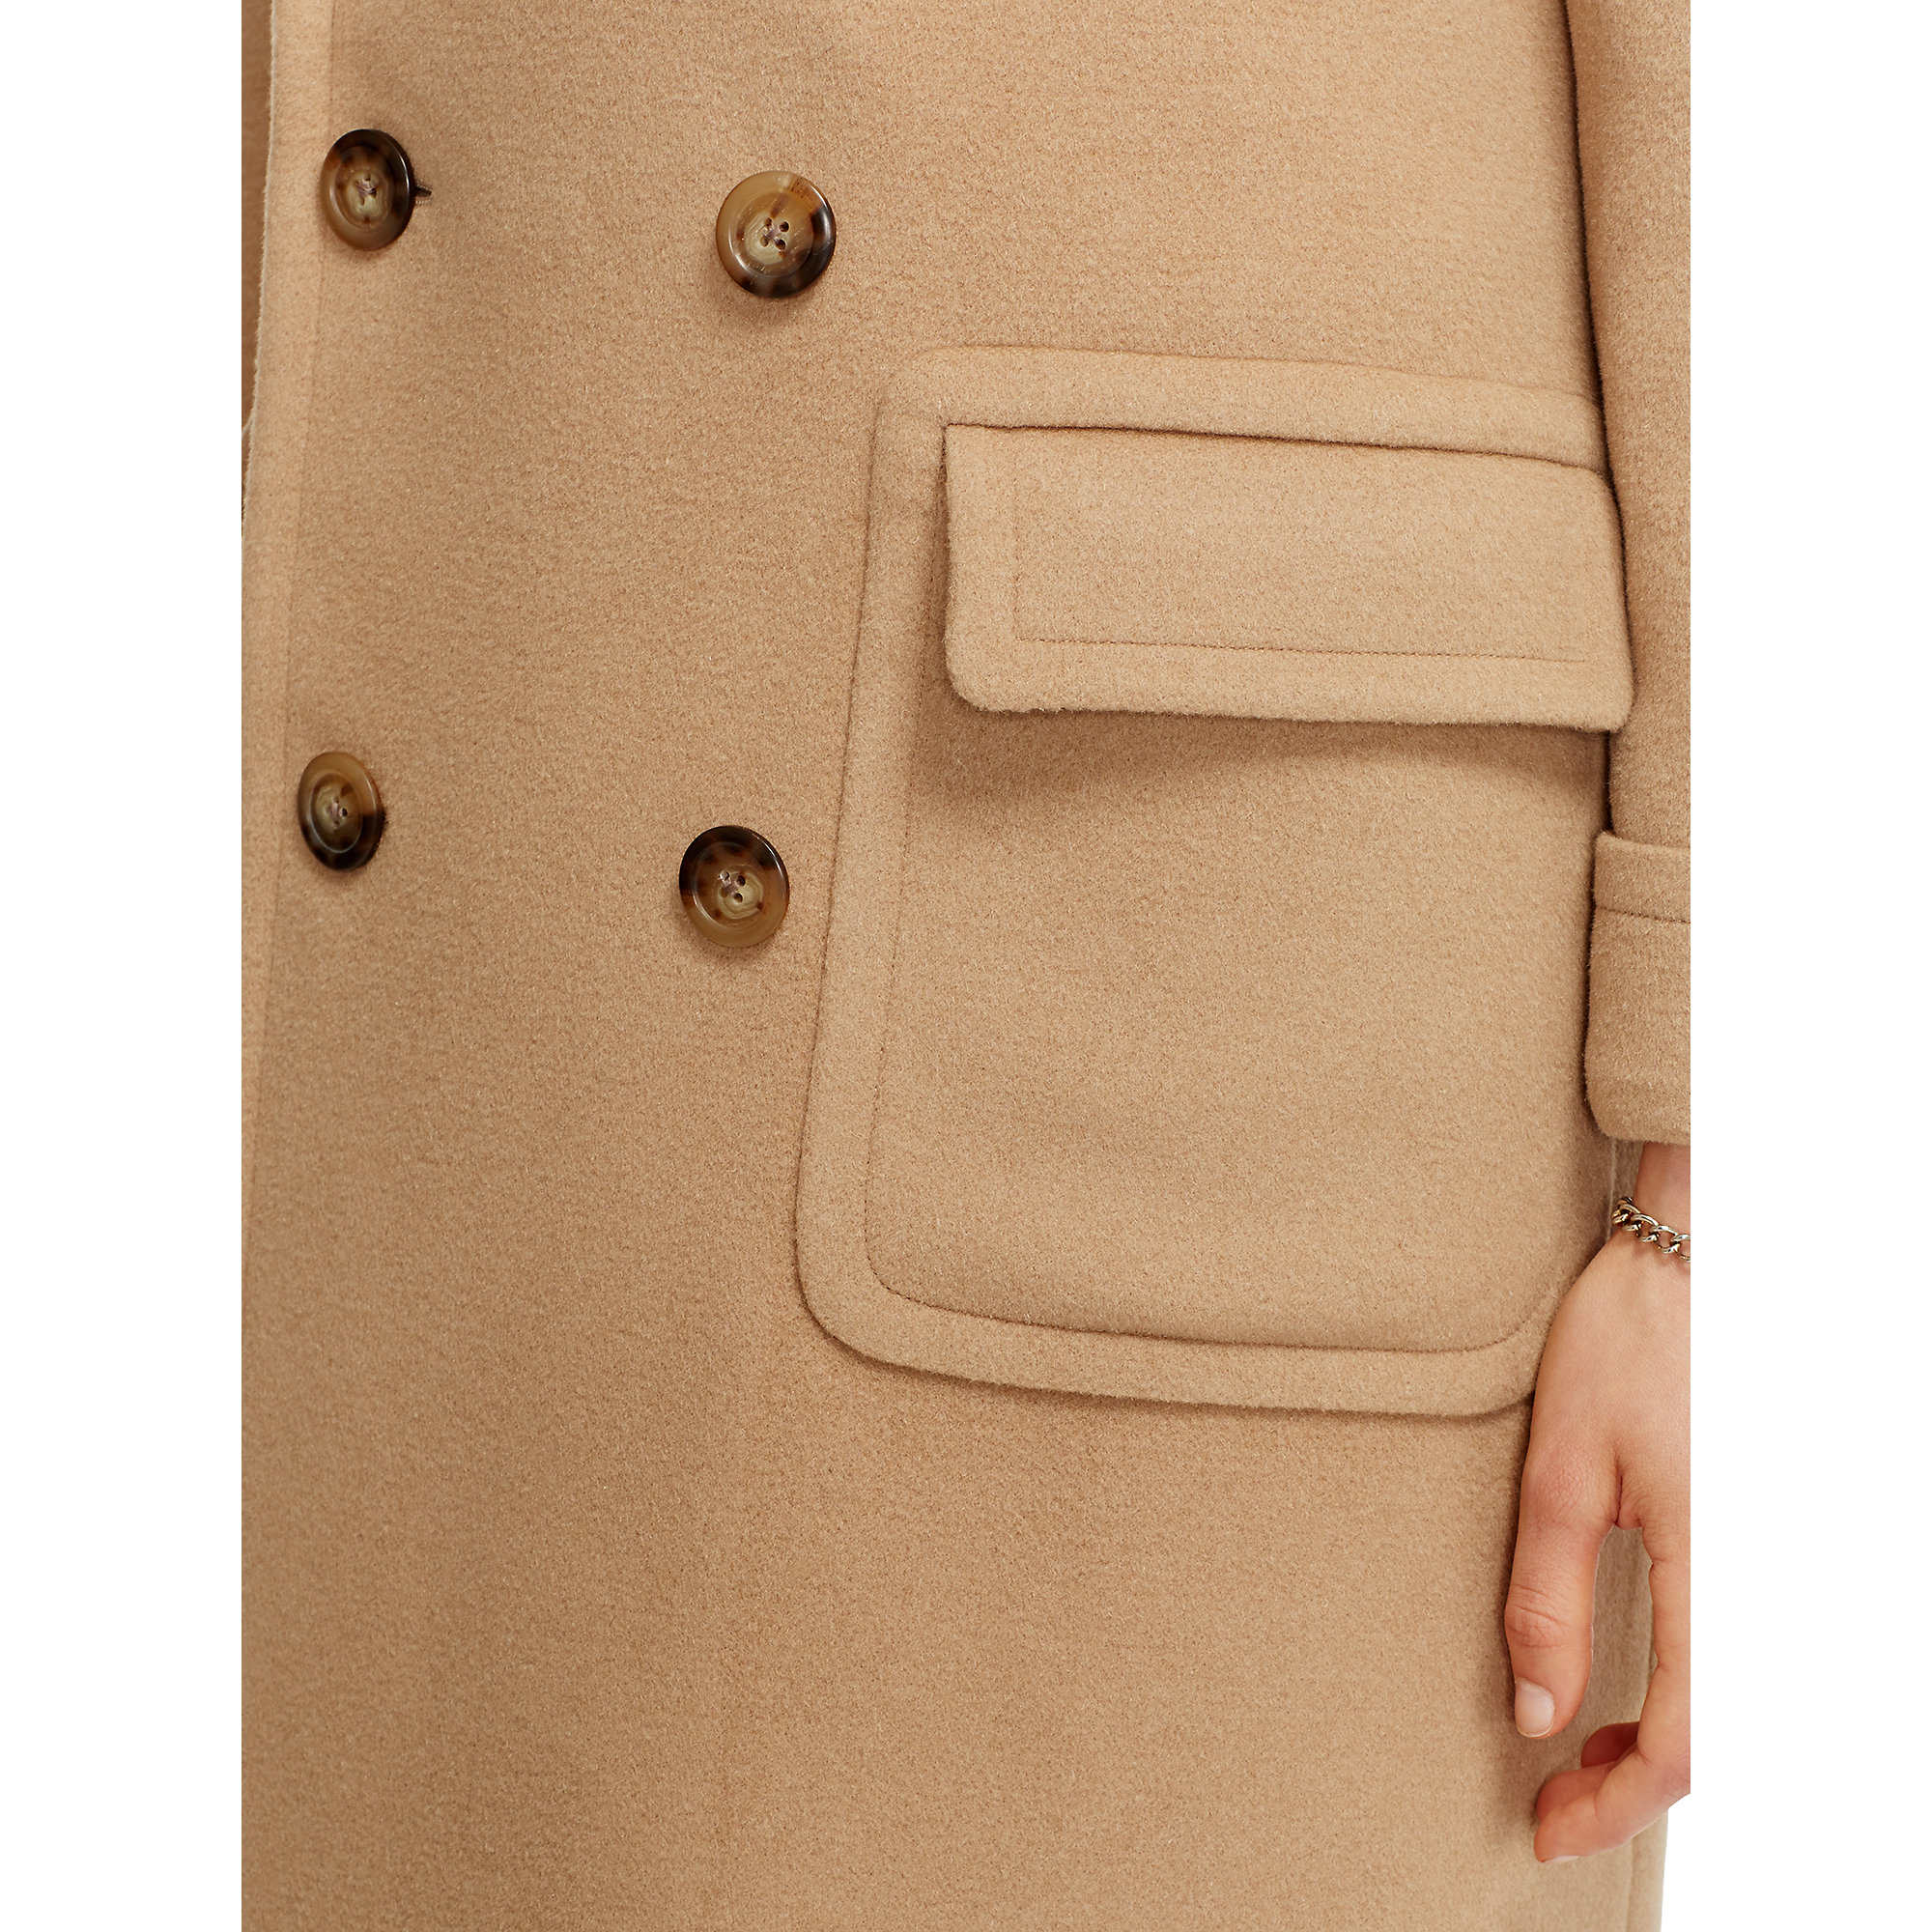 how to orders double coupon united states Polo Ralph Lauren Natural Camel Hair Coat